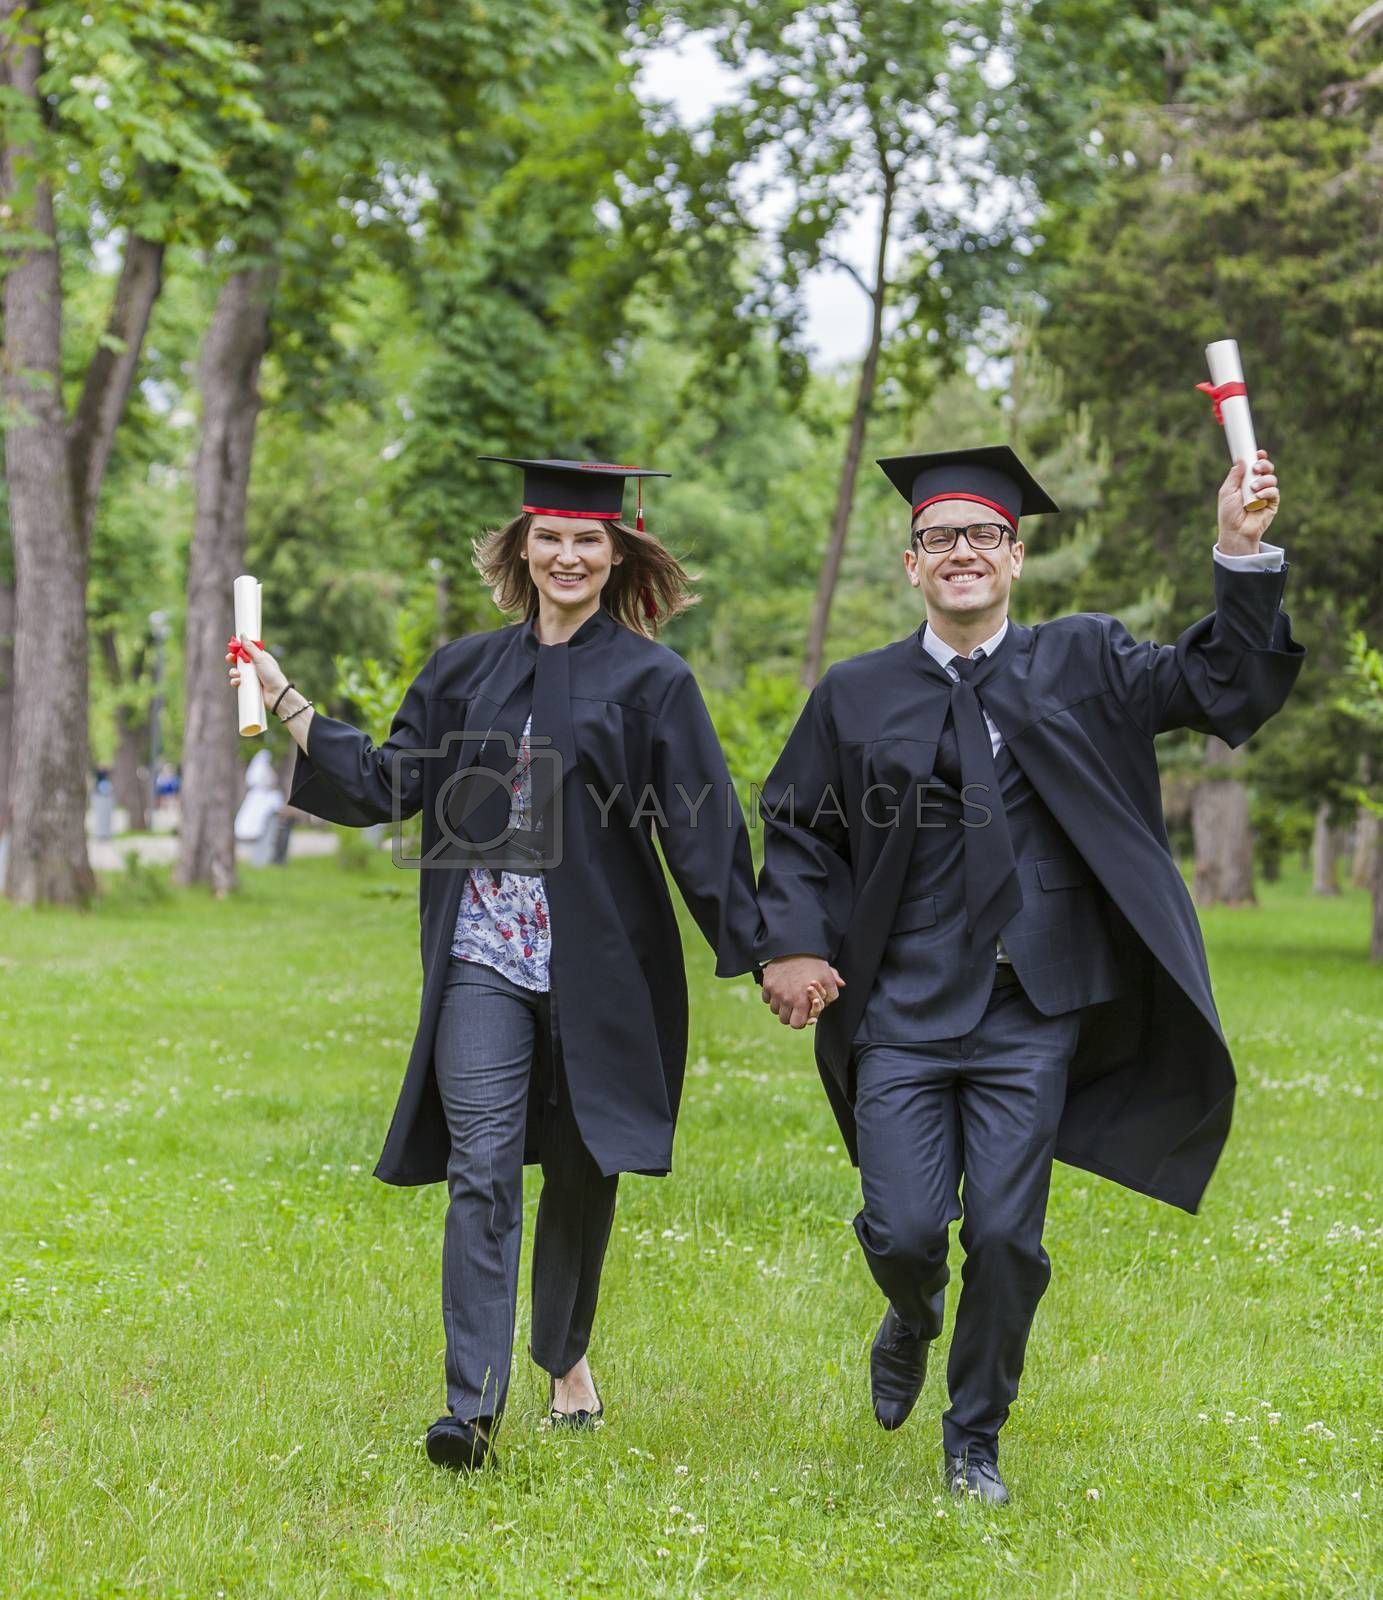 Young happy couple running in a green park in the graduation day.